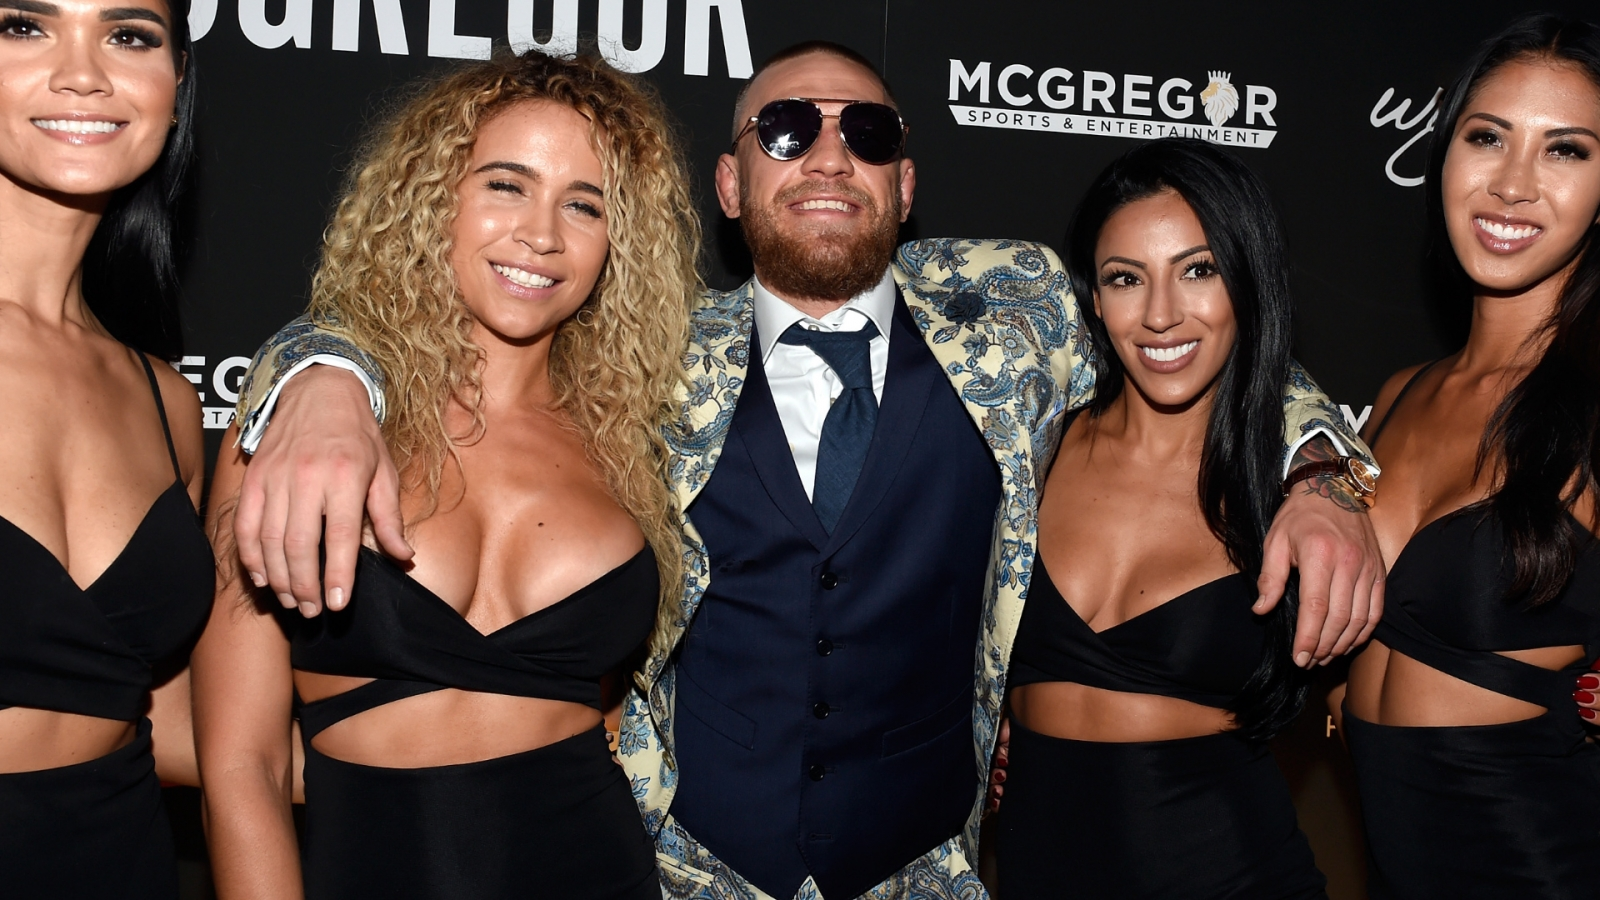 Conor McGregor gives a shout out to Rita Ora